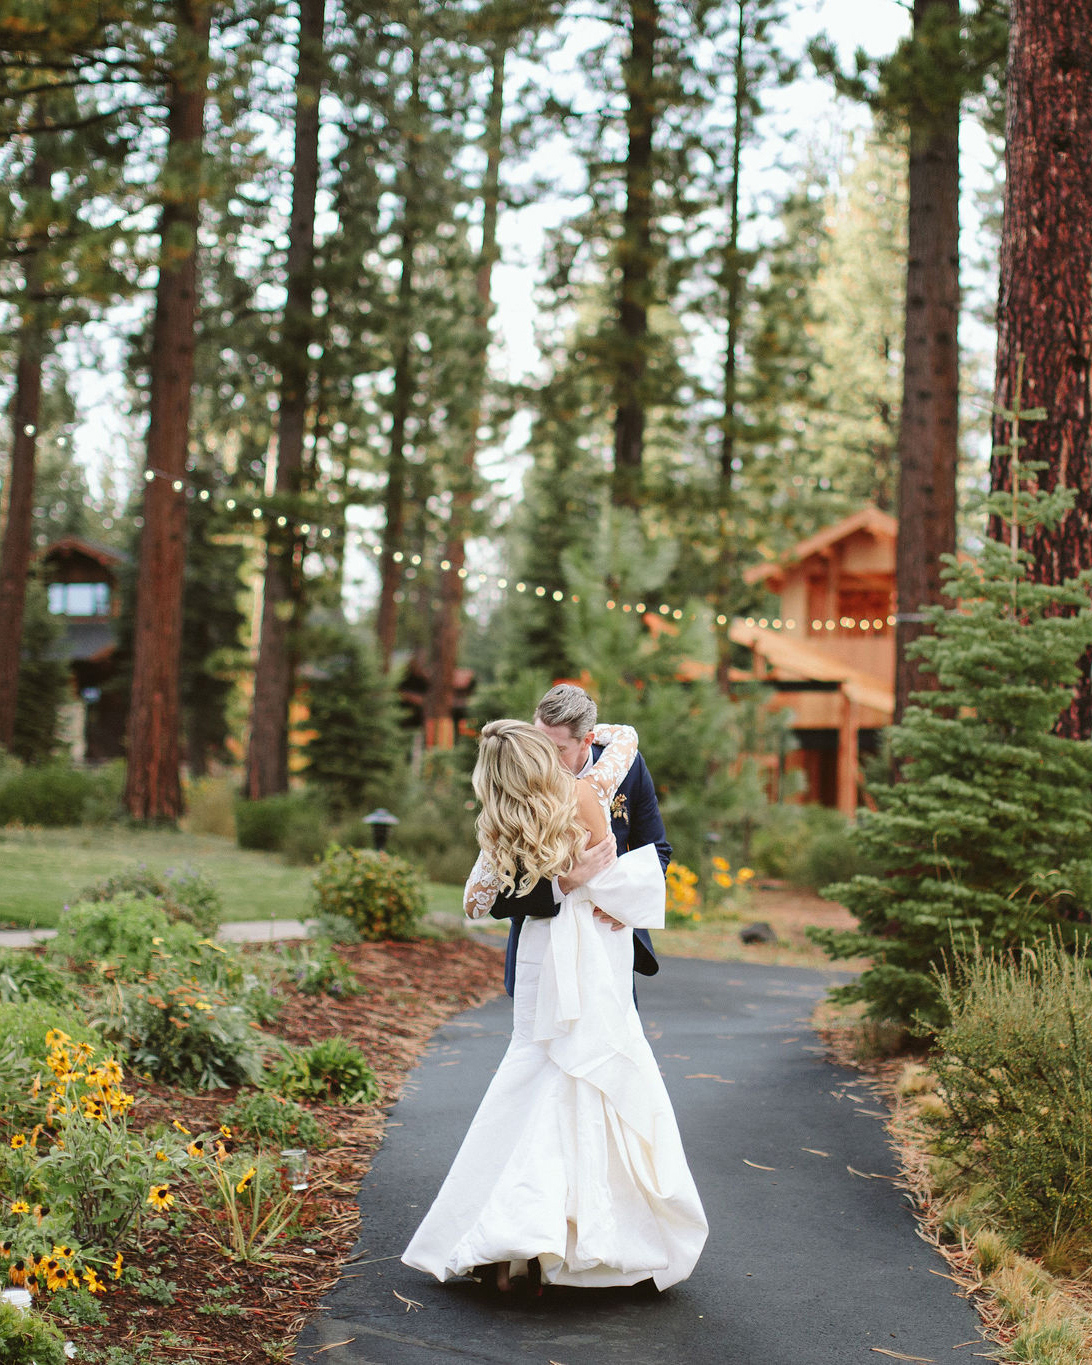 clare tim wedding couple hugging on pathway on trees